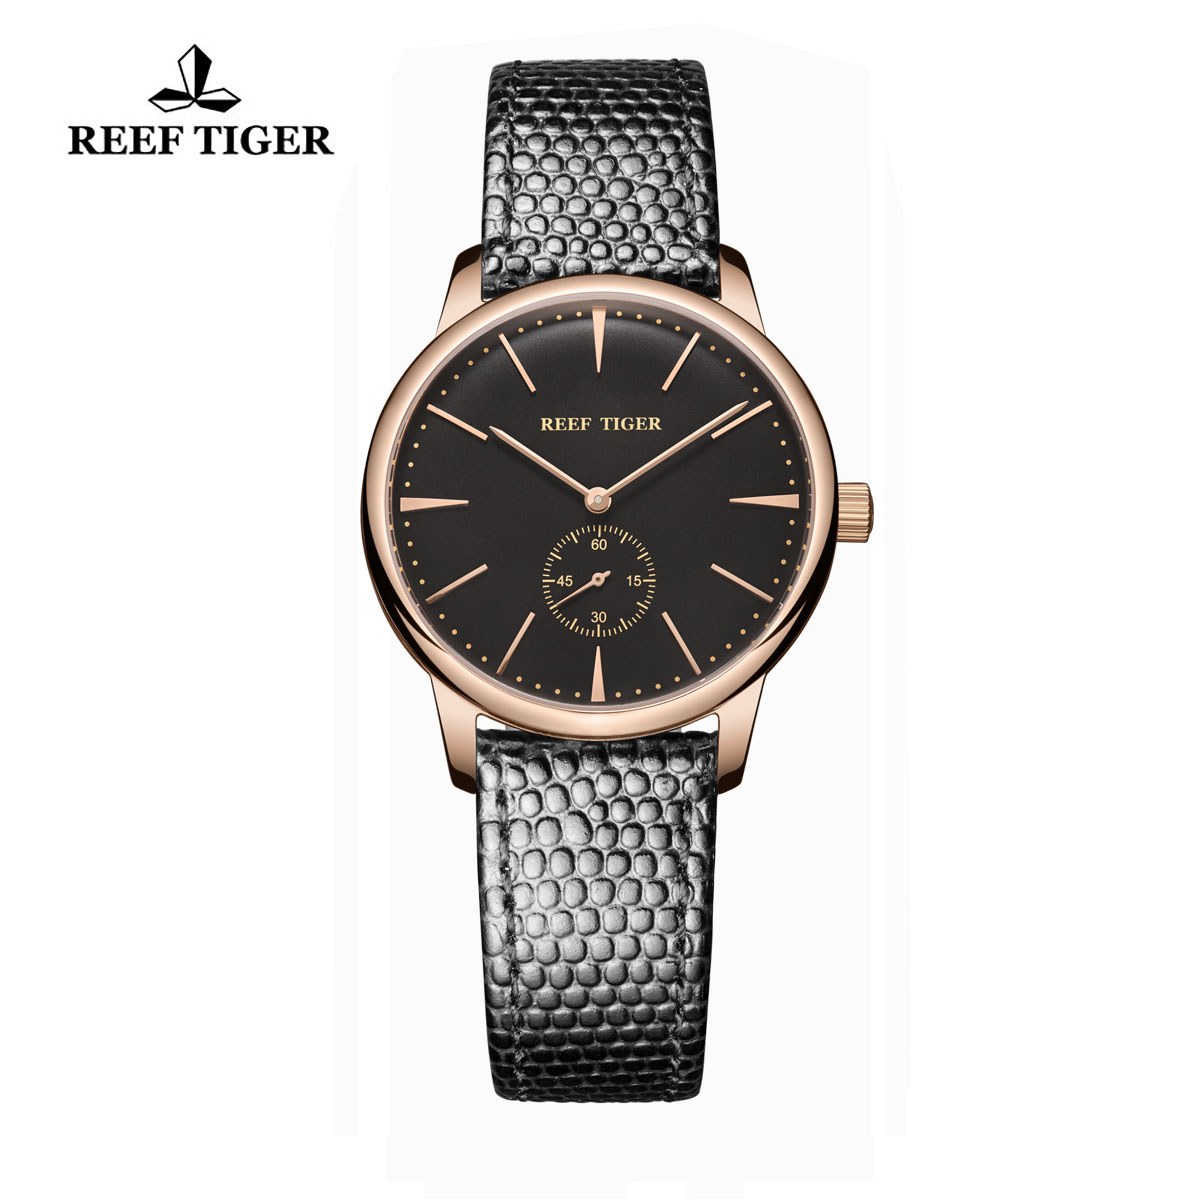 Reef Tiger Vintage Watch Black Dial Rose Gold Calfskin Leather RGA820-PBB-L